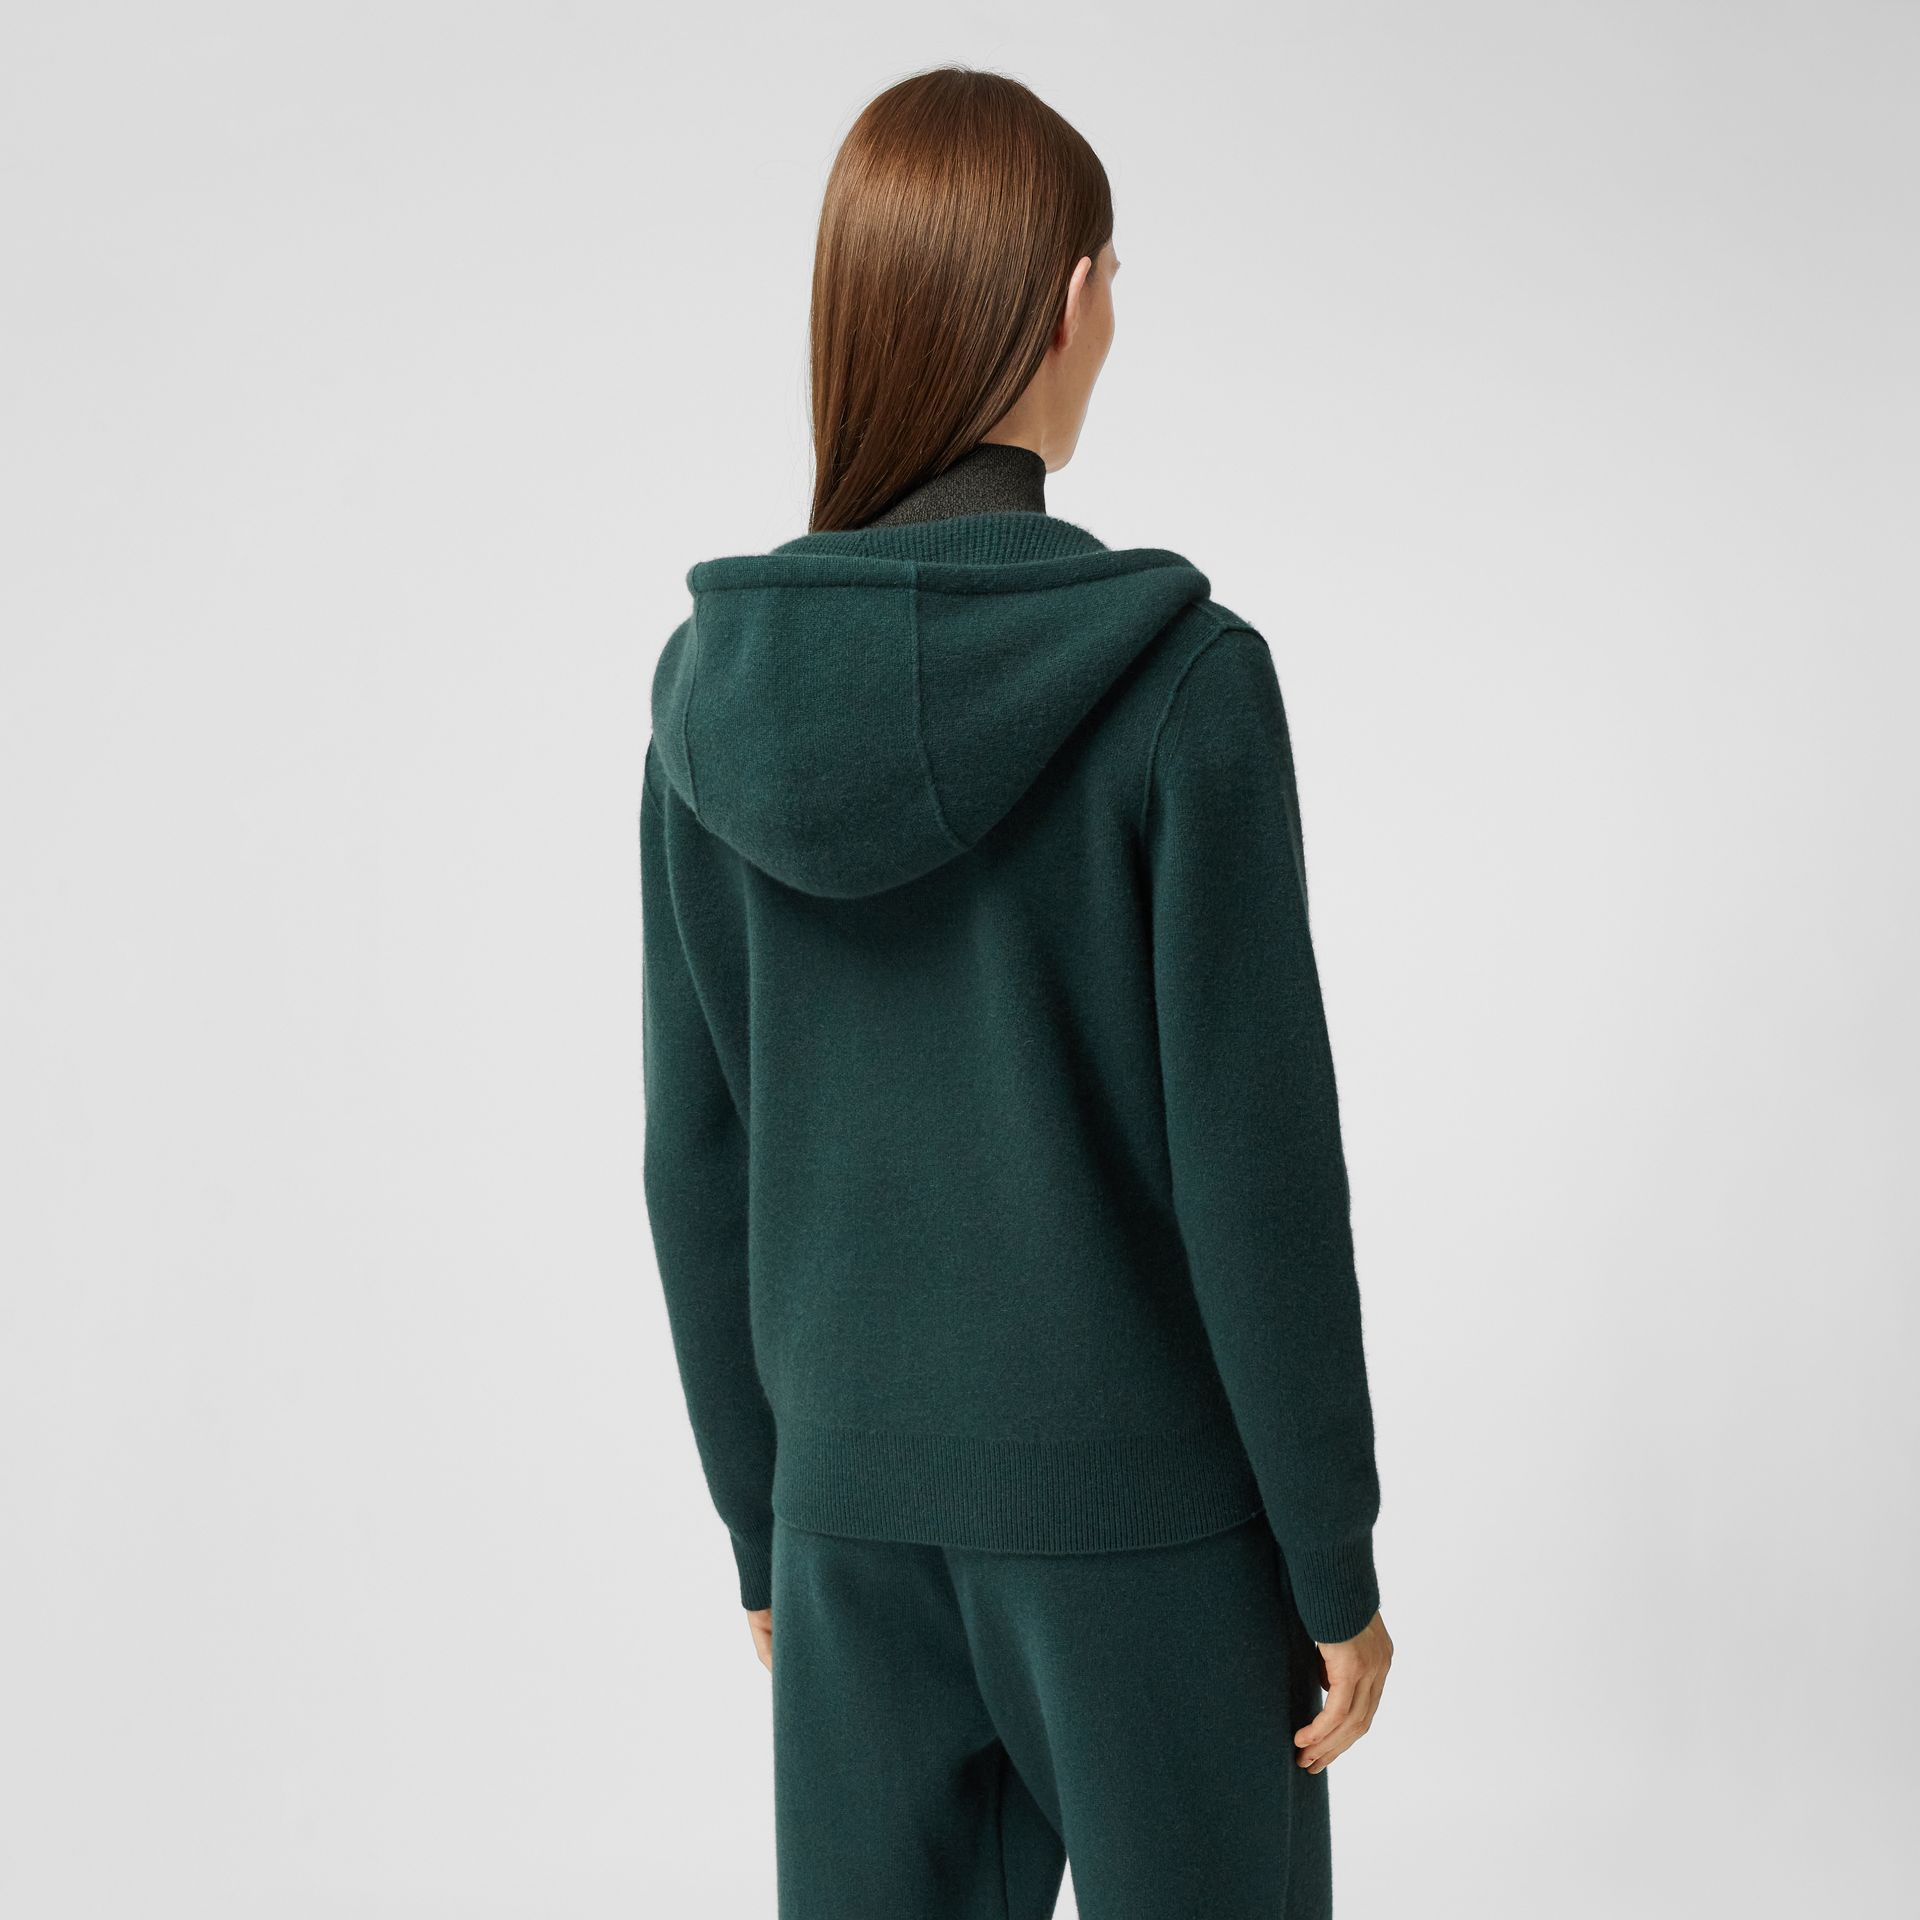 Monogram Motif Cashmere Blend Hooded Top in Bottle Green - Women | Burberry - gallery image 2